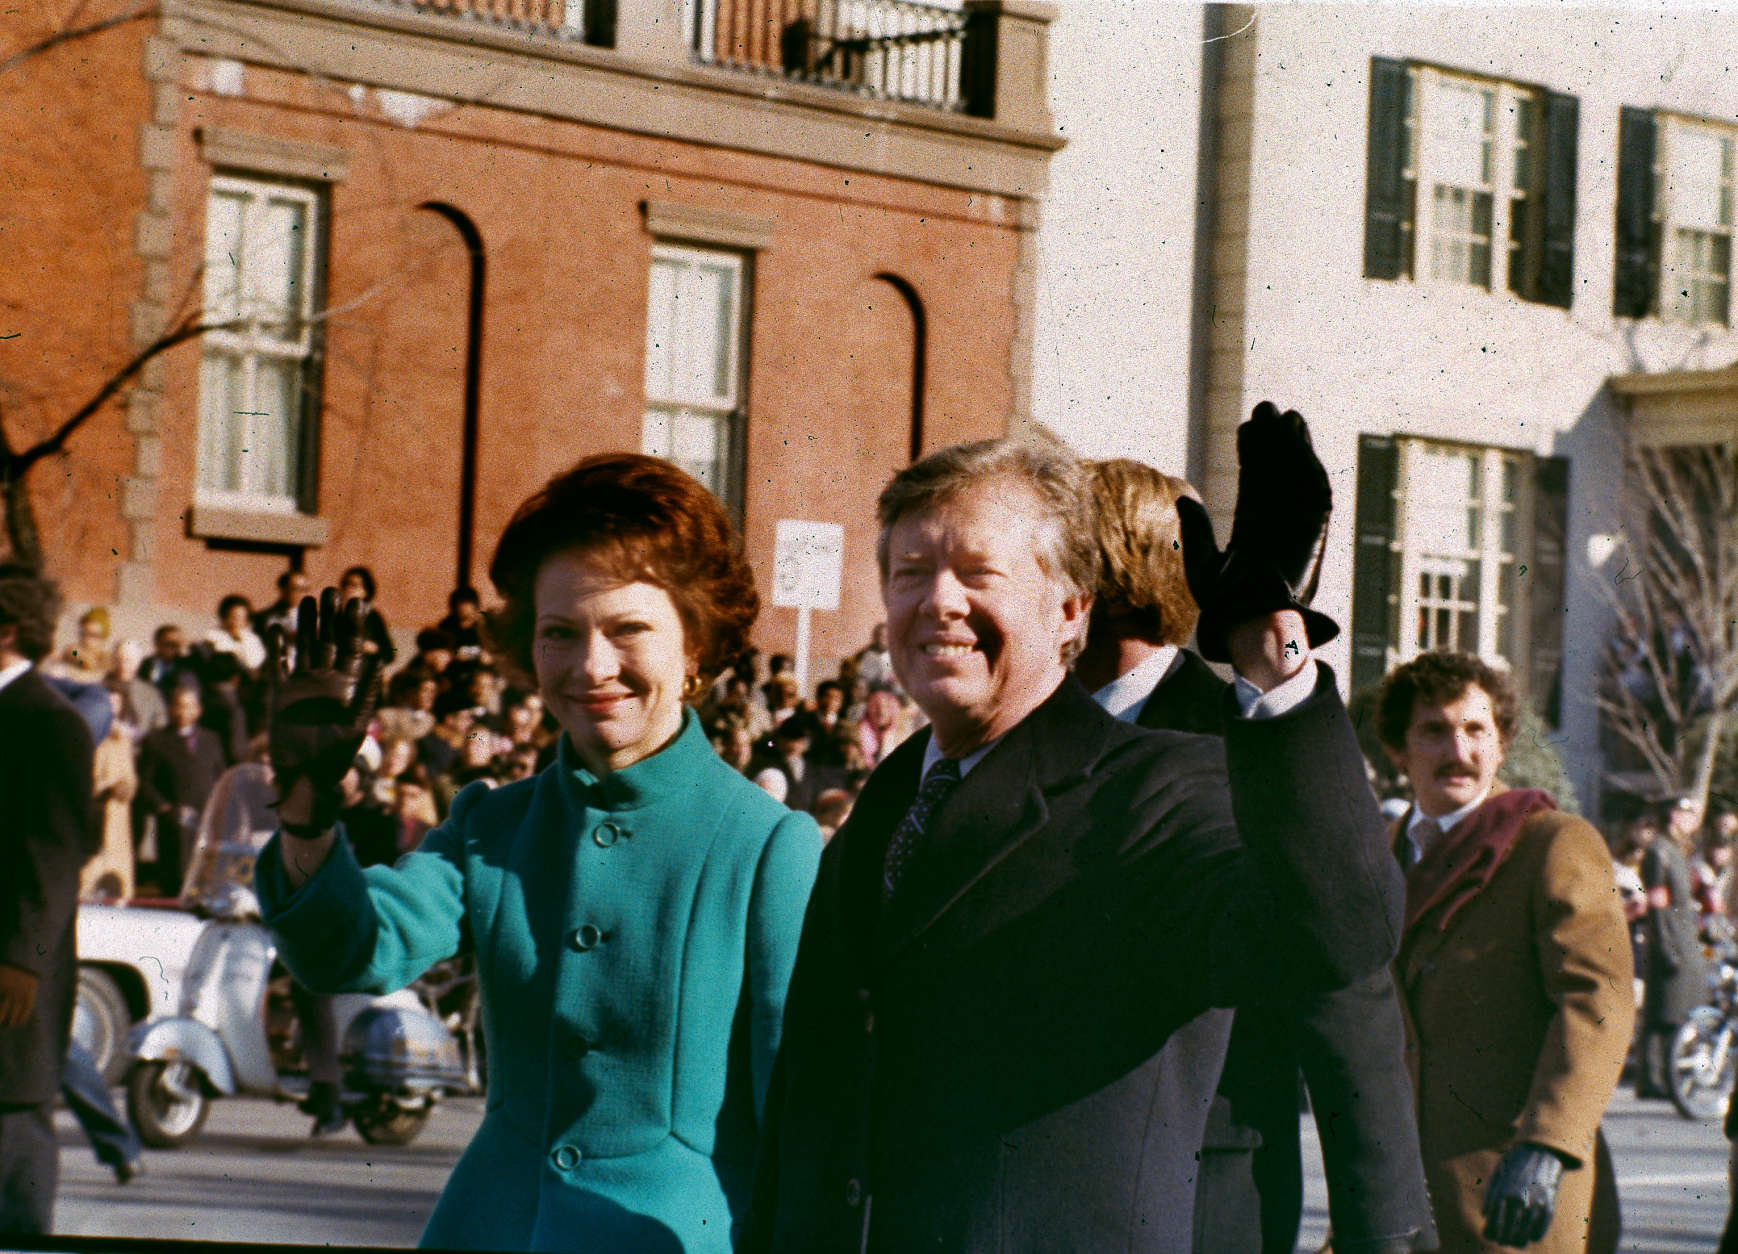 U.S. President Jimmy Carter, right, and his wife, first lady Rosalynn Carter, wave to the crowd as they walk down Washington's Pennsylvania Avenue, Jan. 20, 1977.  Carter was sworn in as the 39th president of the United States during the inauguration ceremonies.  (AP Photo)